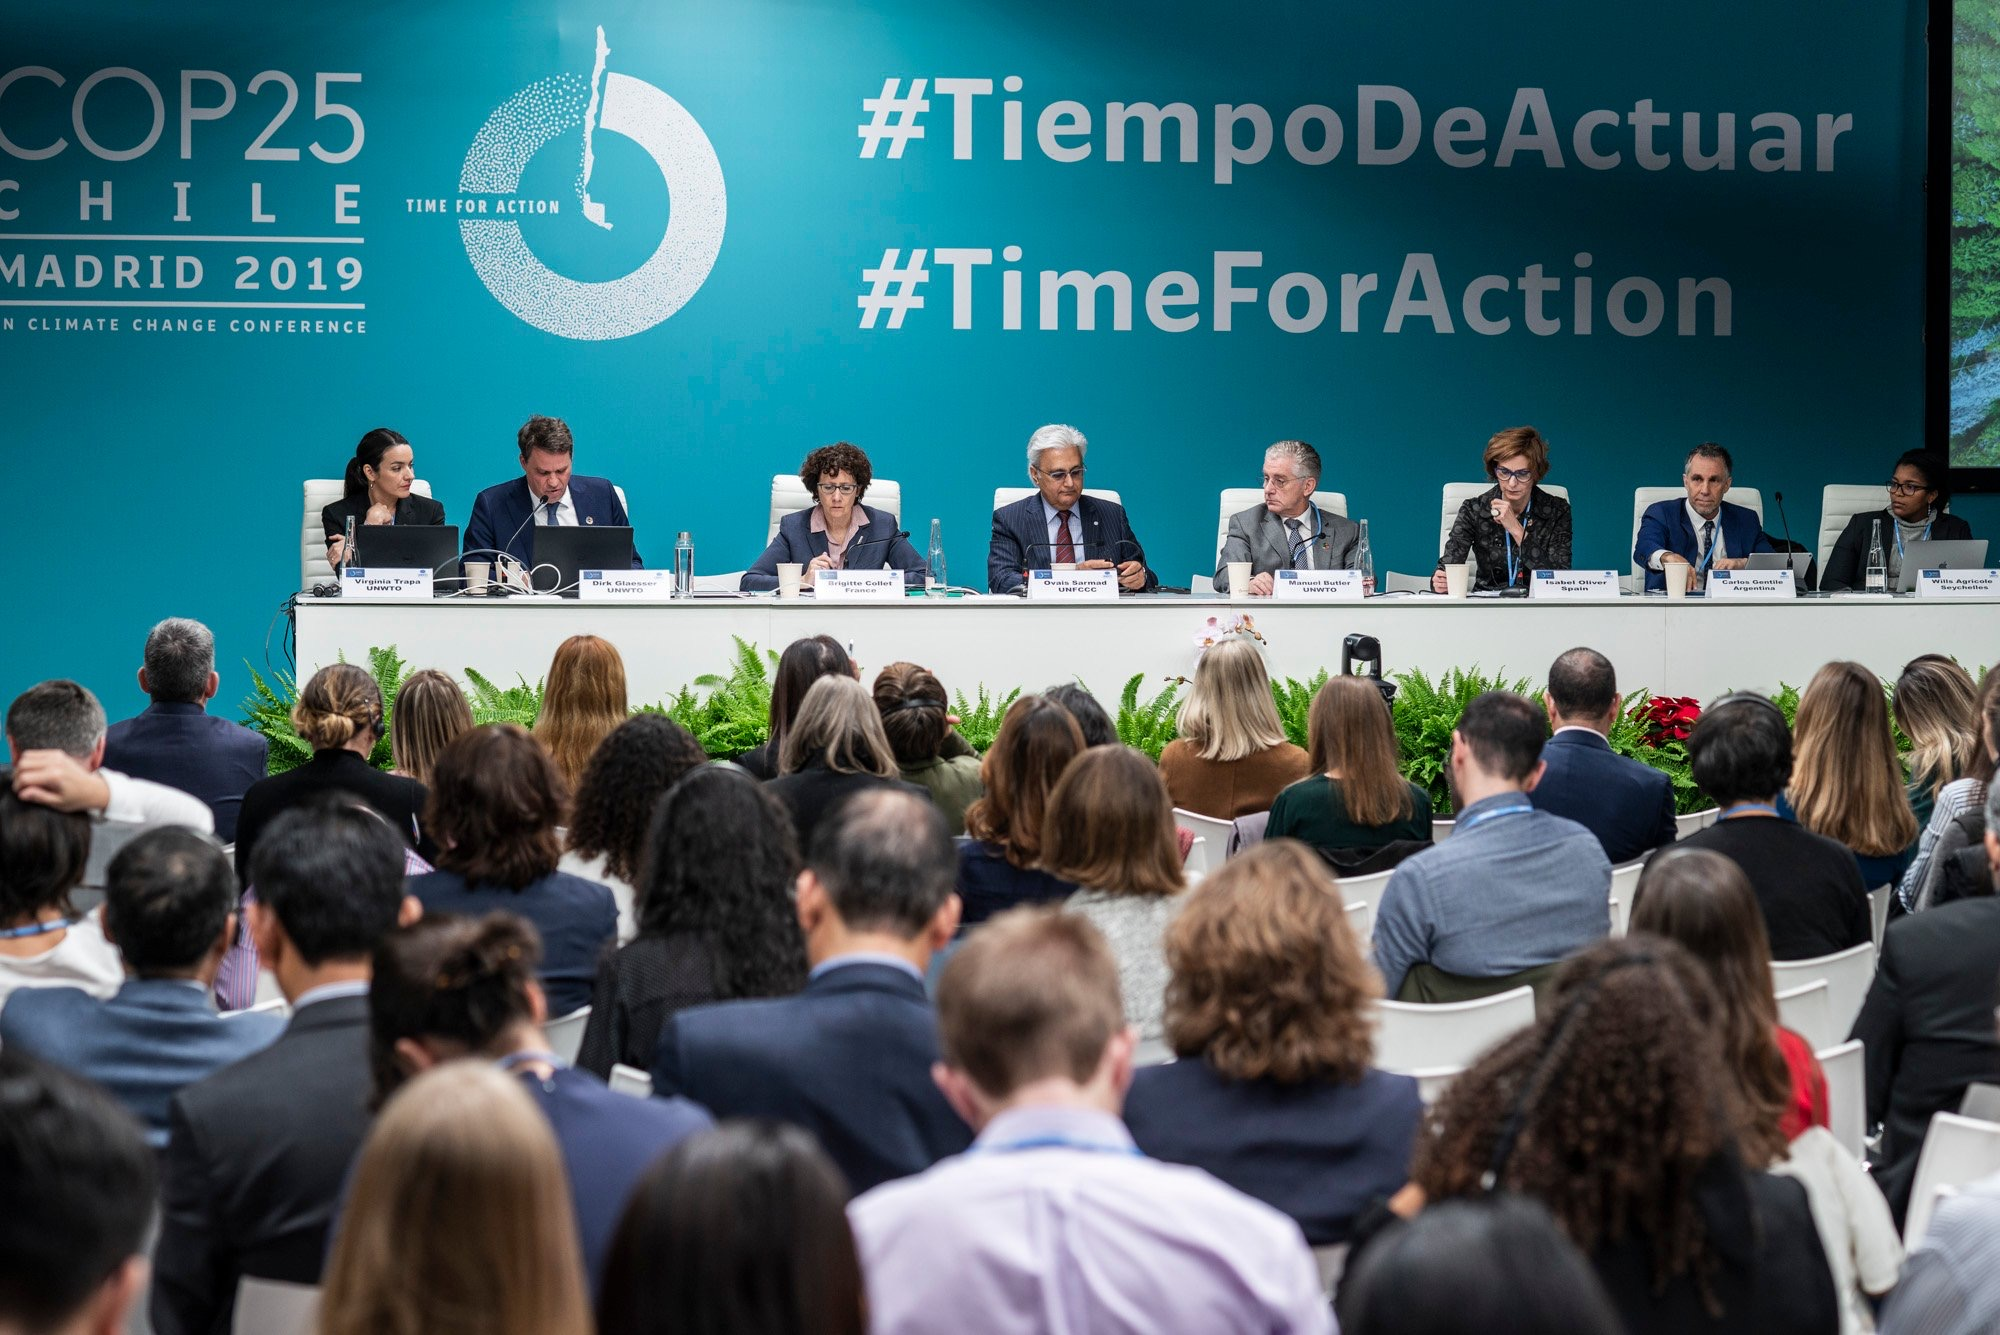 Tourism's Carbon Emissions Measured in Landmark Report Launched At COP25